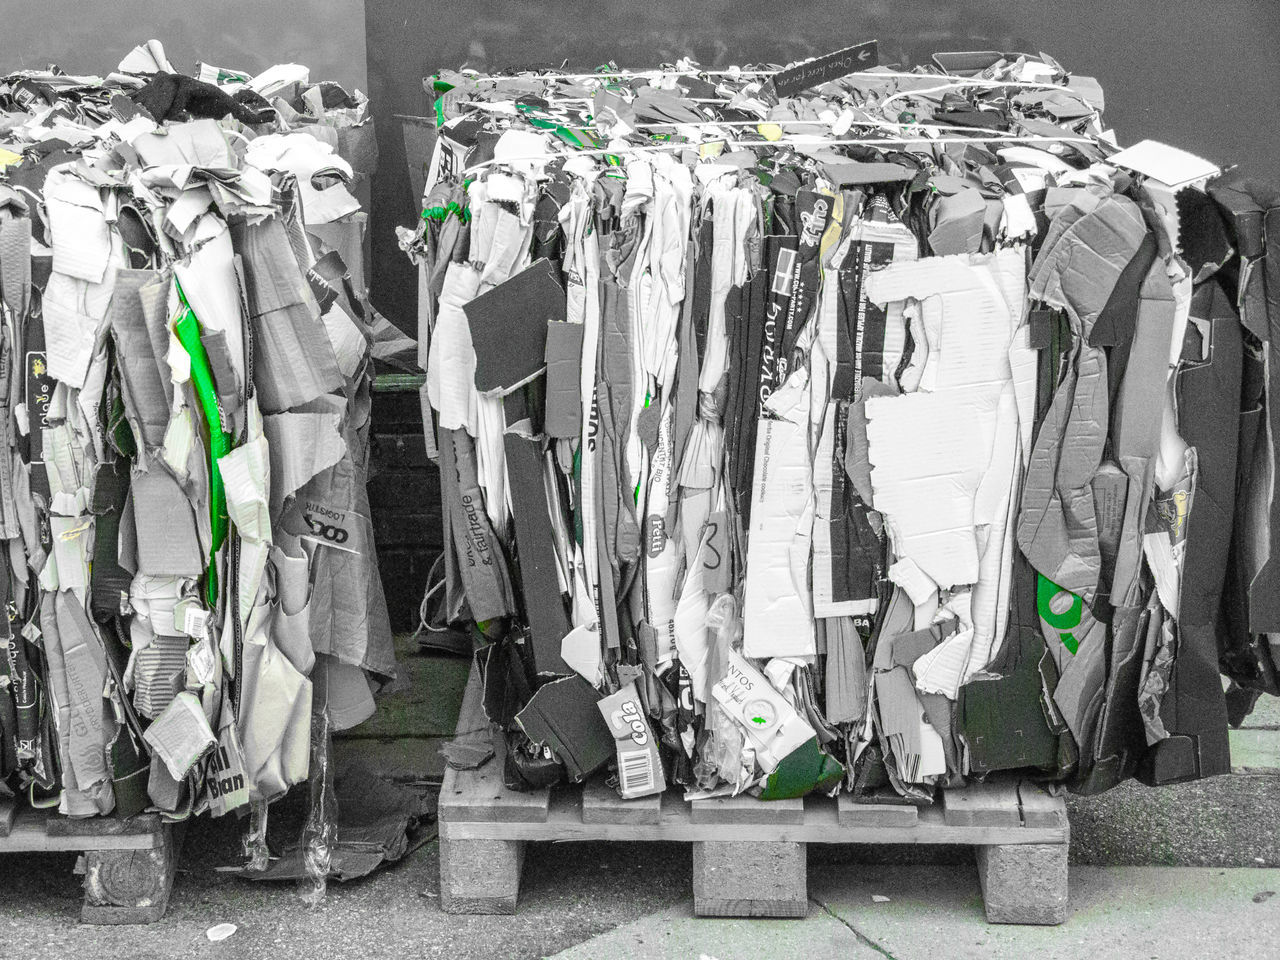 variation, large group of objects, clothing, garbage, choice, shoe, no people, arrangement, day, hanging, indoors, low section